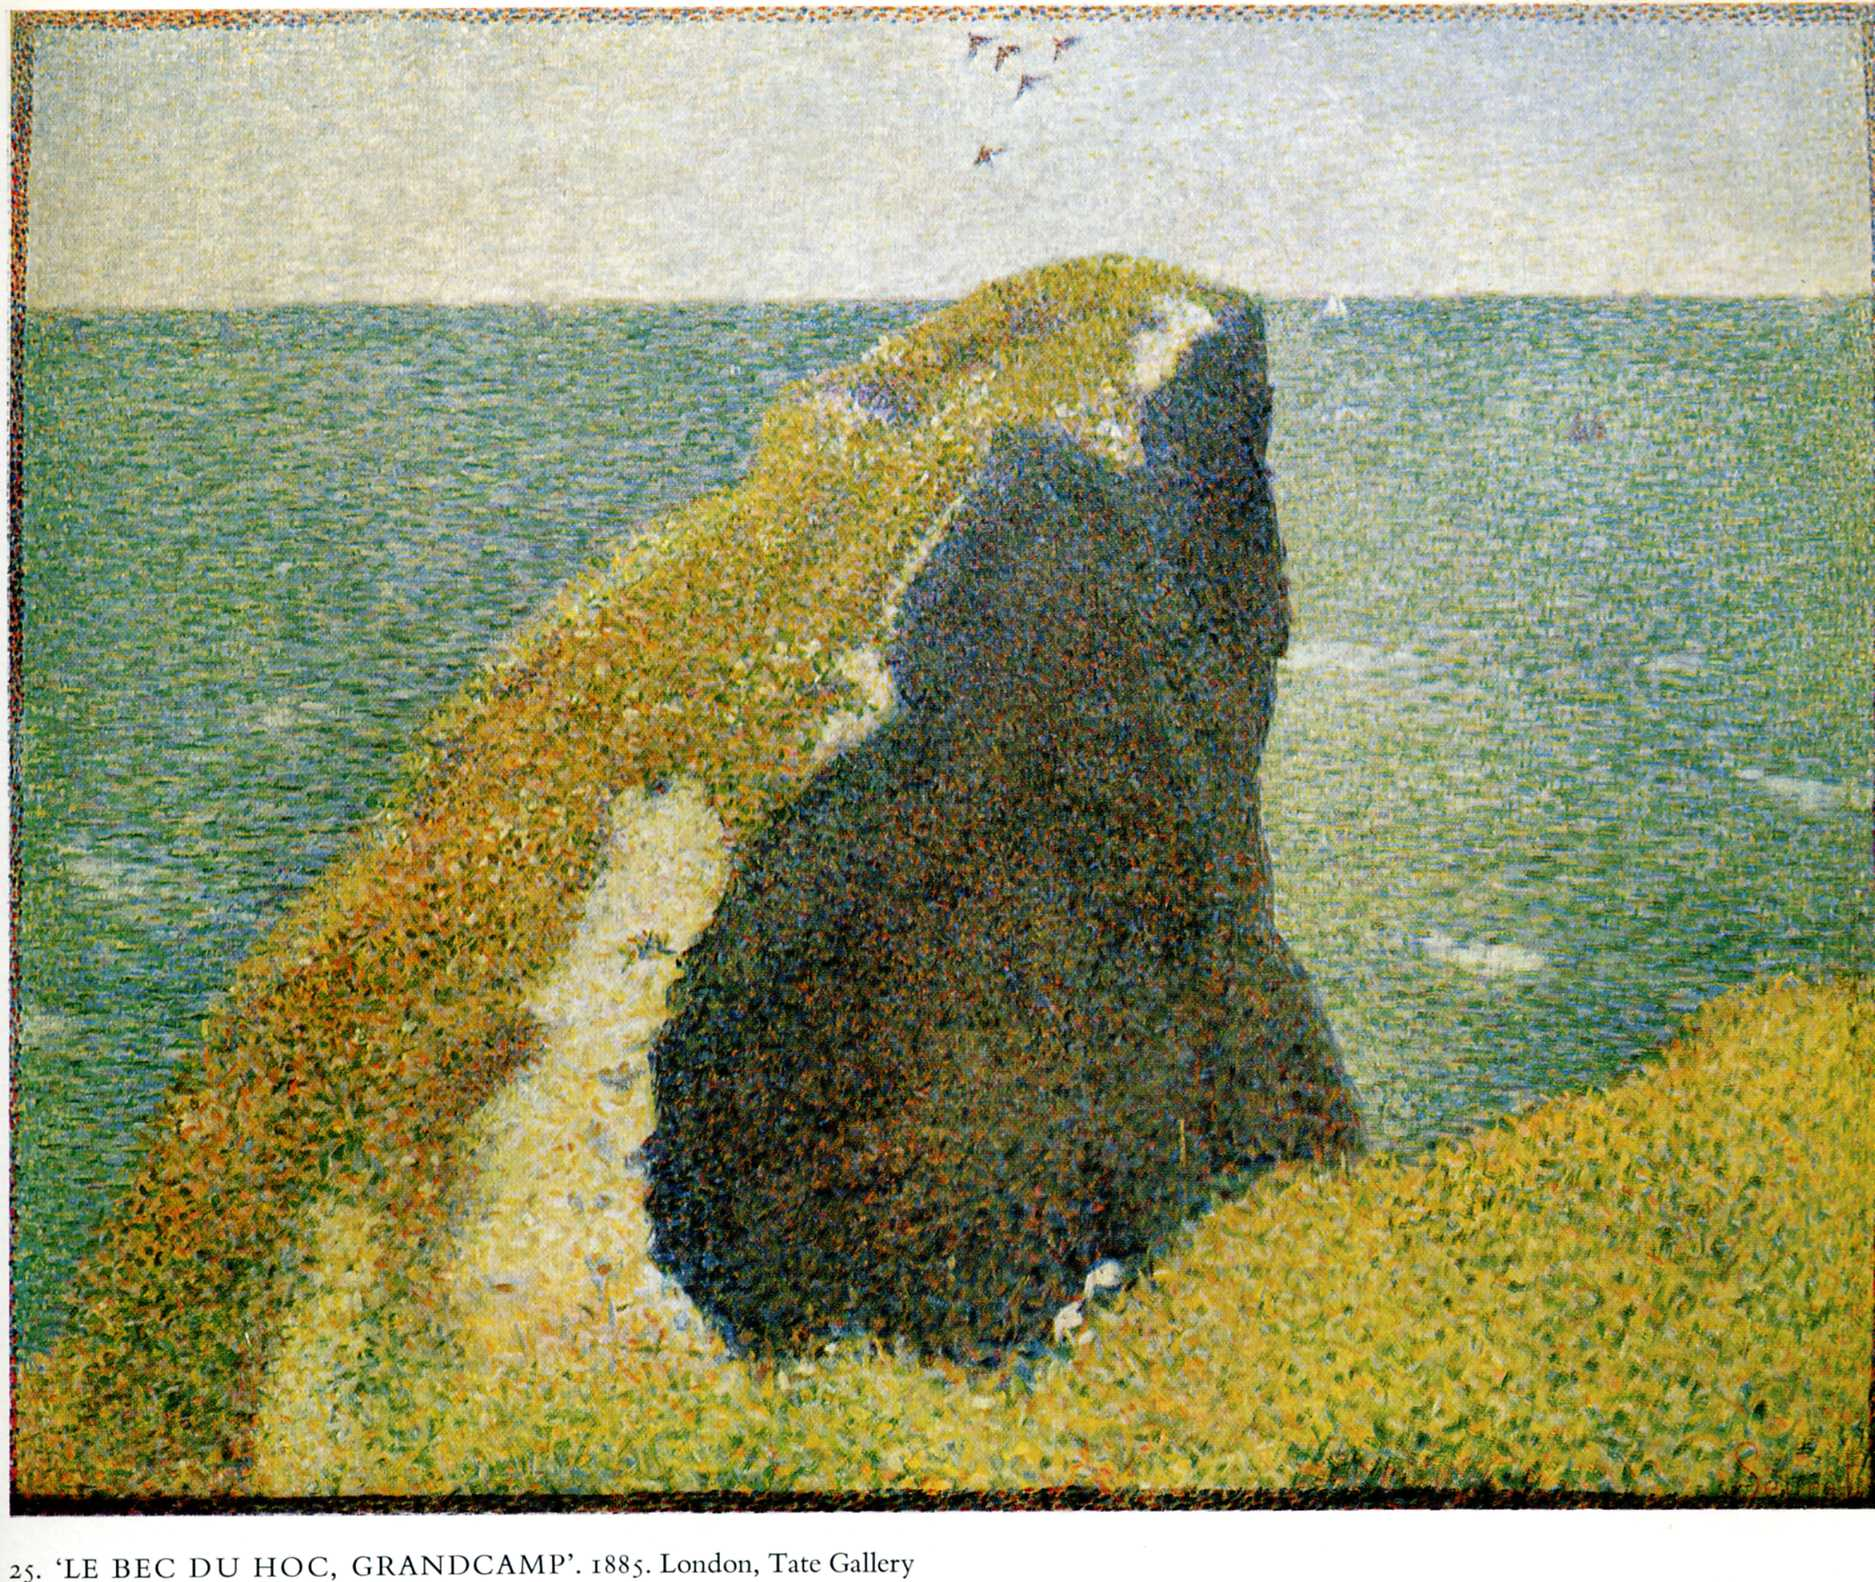 The Bec du Hoc, Grandcamp, 1885 - Georges Seurat - WikiArt.org